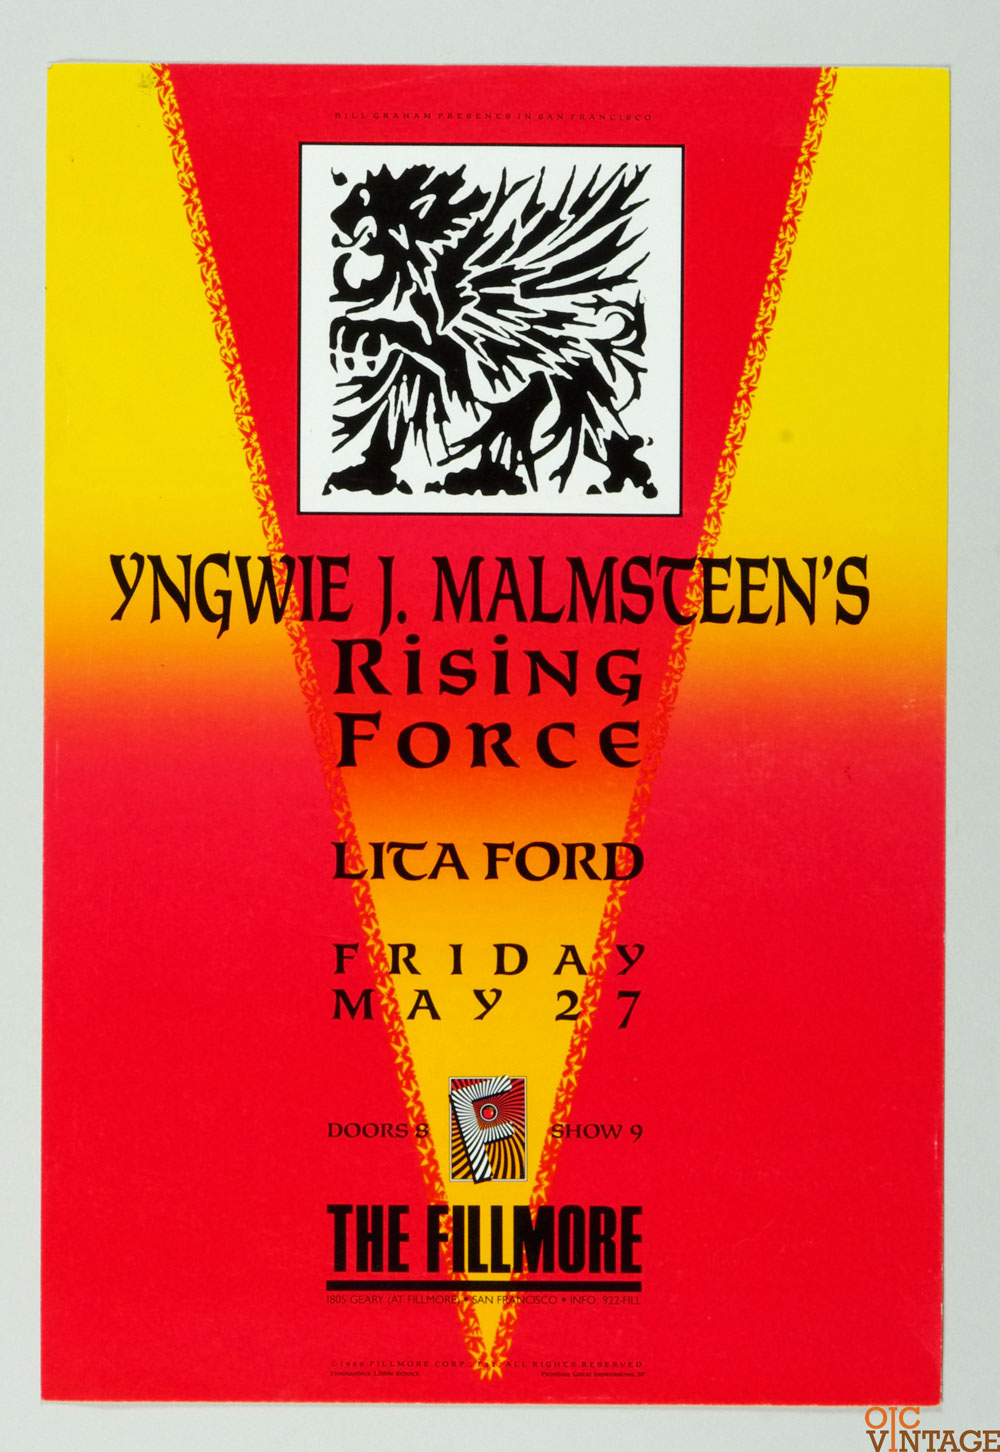 Yngwie J. Malmsteen's Rising Force Poster 1988 May 27 New Fillmore